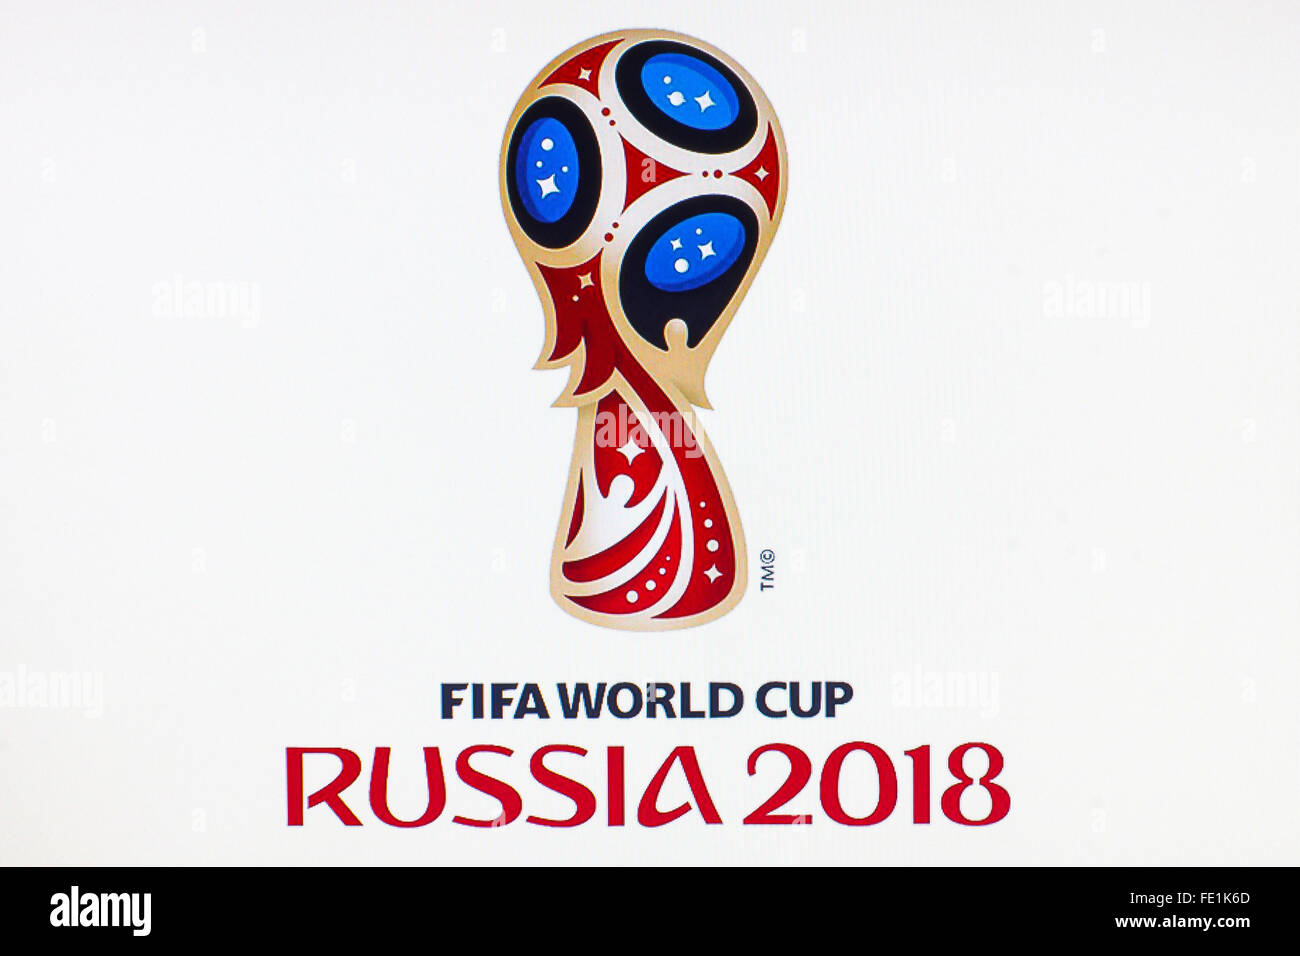 GDANSK, POLAND - NOVEMBER 14, 2015. Official logo of the football world championship in Russia on computer screen. - Stock Image